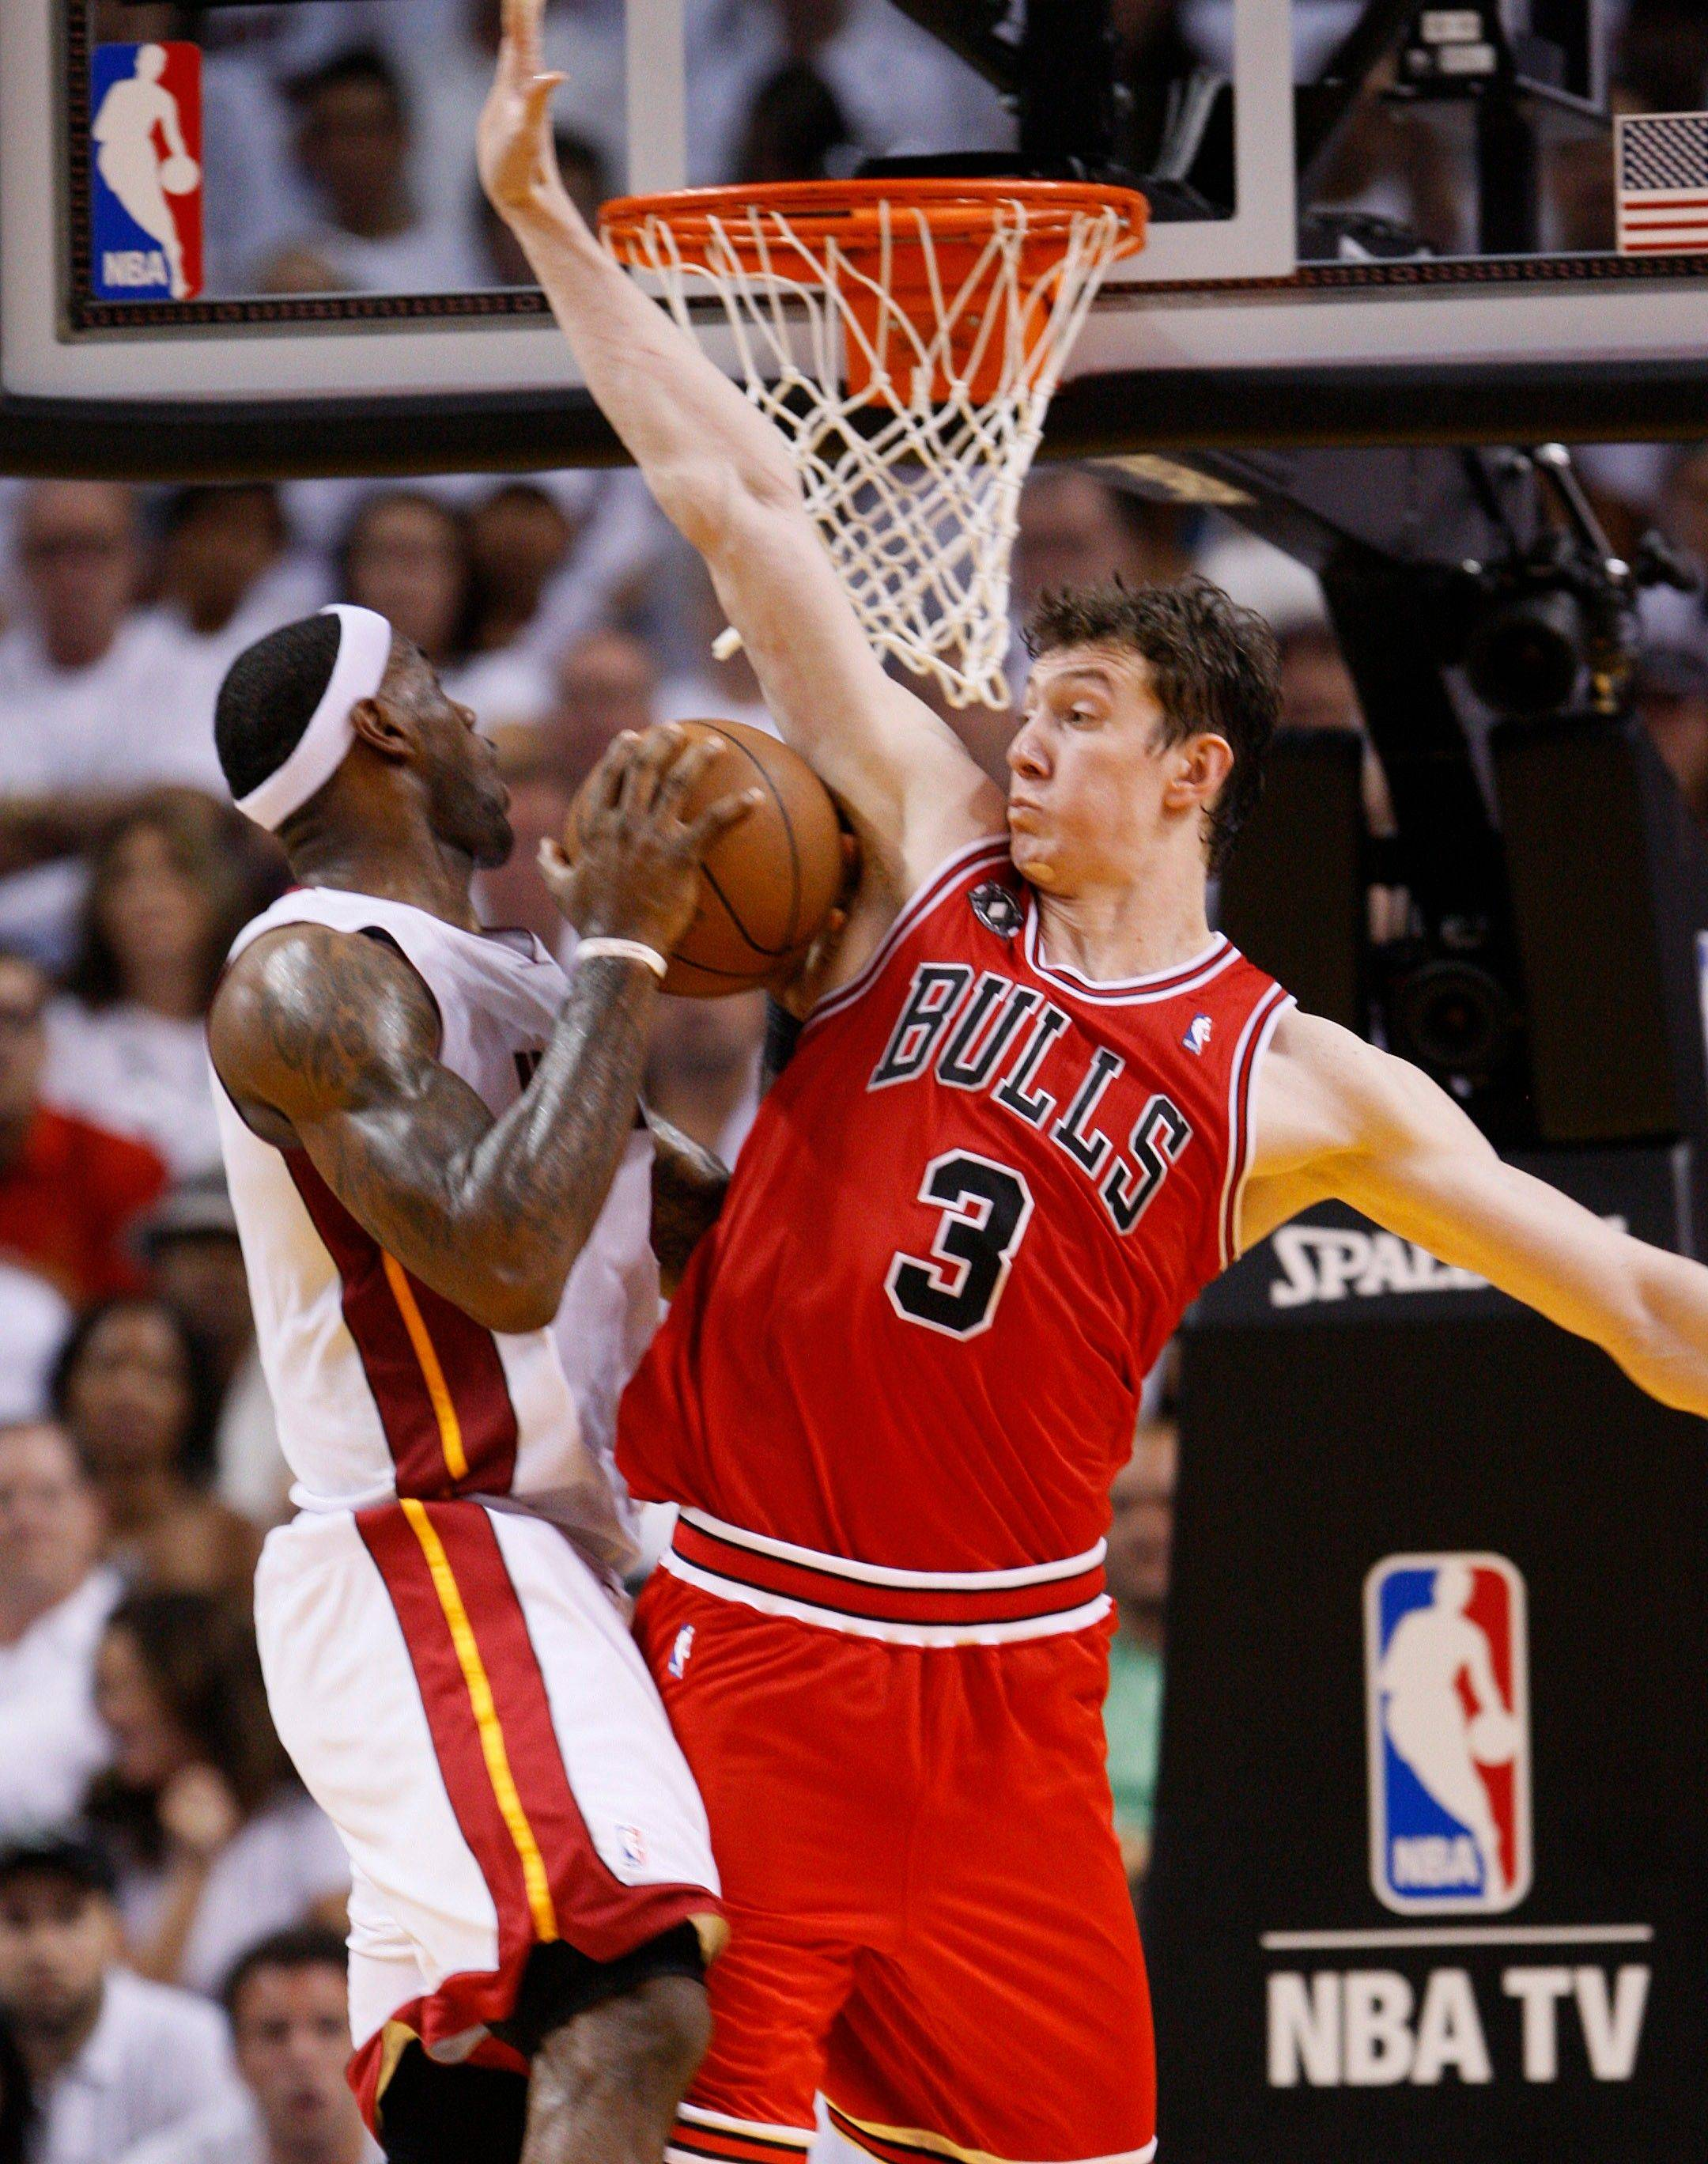 Miami Heat's LeBron James, left, goes up for a shot against Chicago Bulls' Omer Asik (3) during the second half of Game 3 of the NBA Eastern Conference finals basketball series in Miami, Sunday, May 22, 2011.